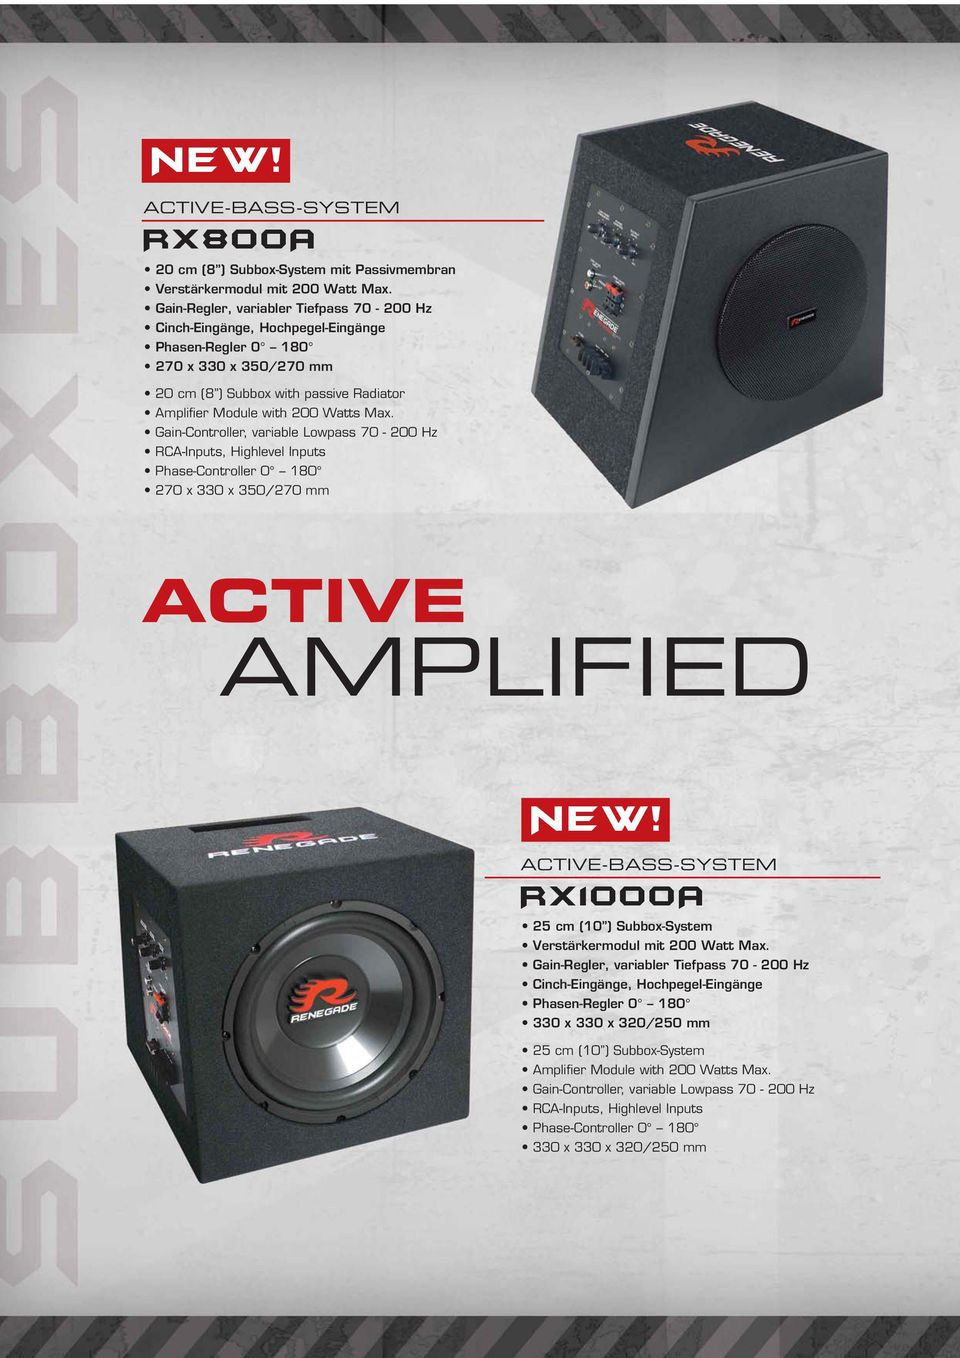 Gain-Controller, variable Lowpass 70-200 Hz RCA-Inputs, Highlevel Inputs Phase-Controller 0 180 270 x 330 x 350/270 mm ACTIVE AMPLIFIED NEW!